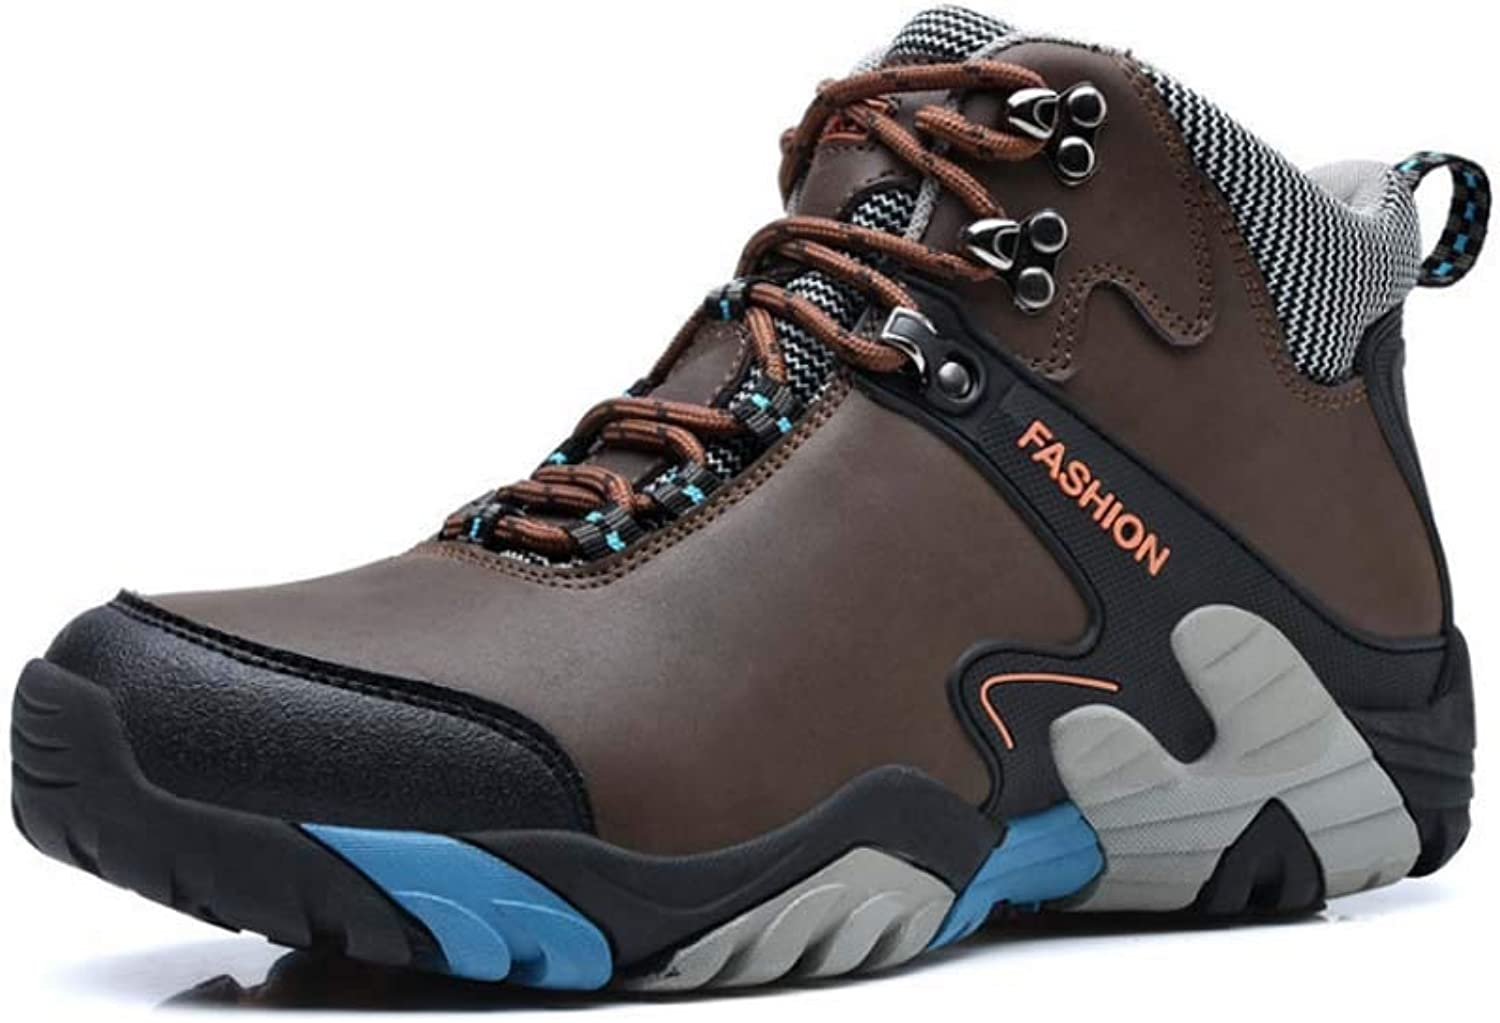 Men Outdoor Hiking shoes Hiking Warm Ankle Boots Slip Wear Sneakers shoes Outdoor Adventure Leisure Travel shoes Large Size